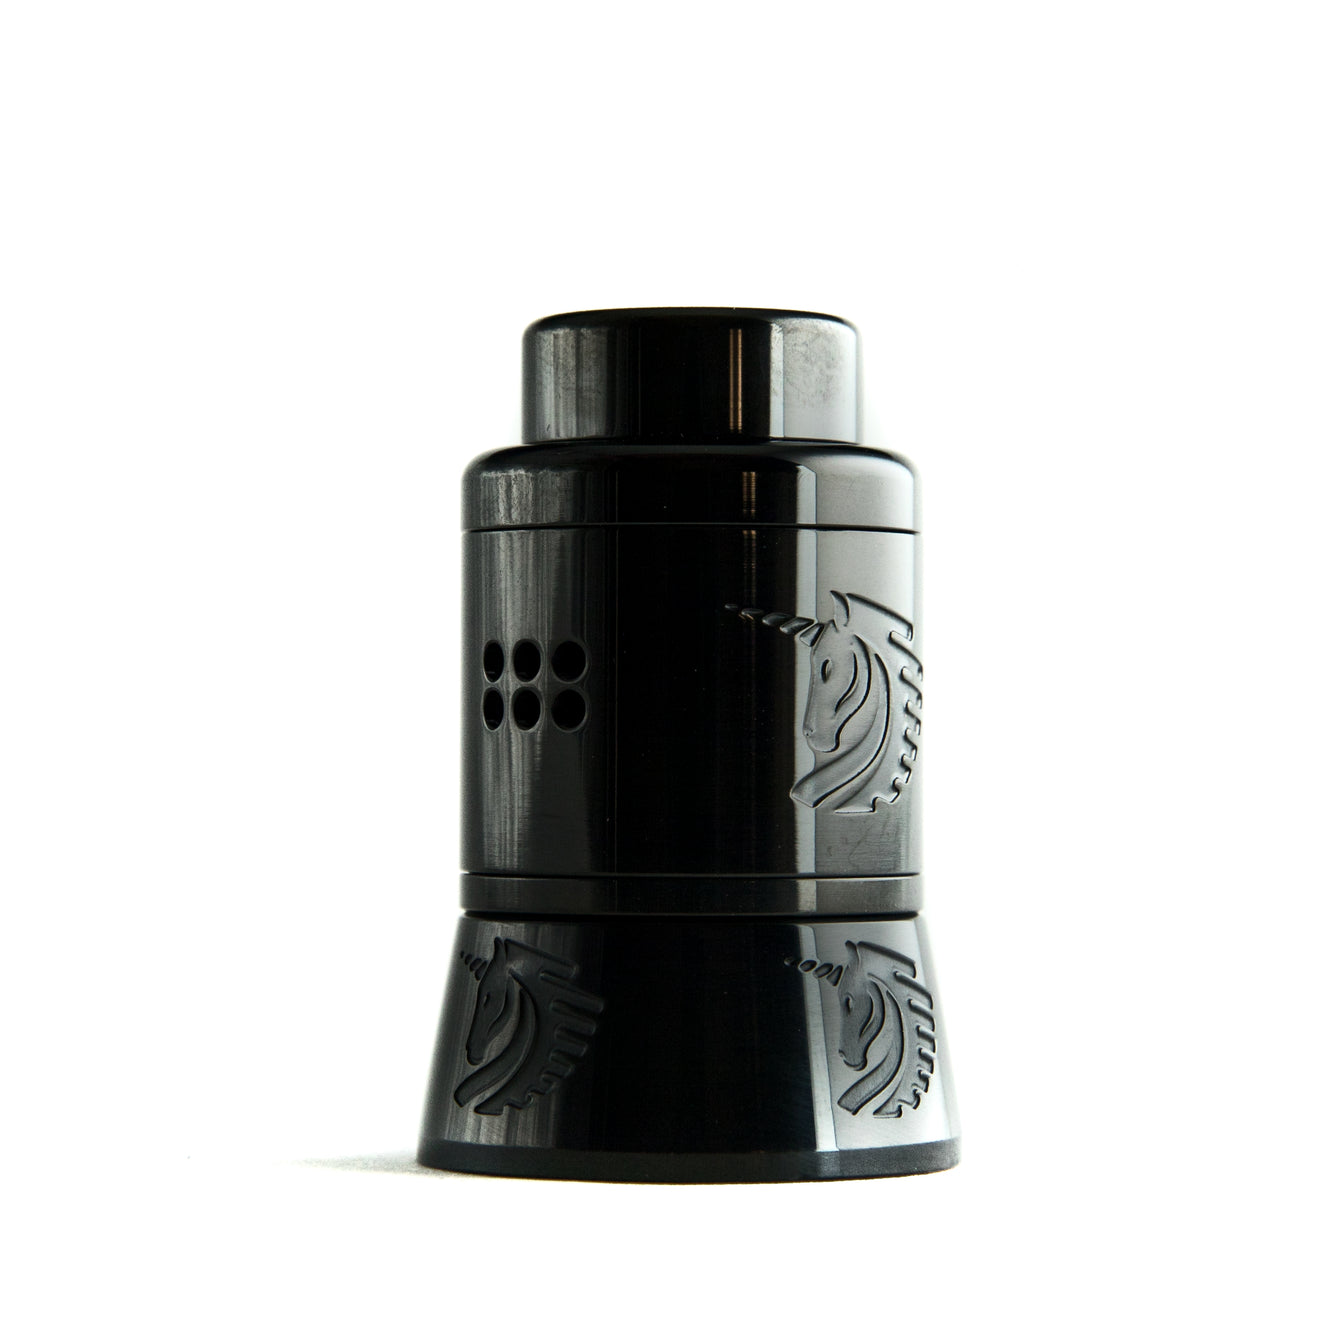 Polish Black 25mm Unicorn RDA